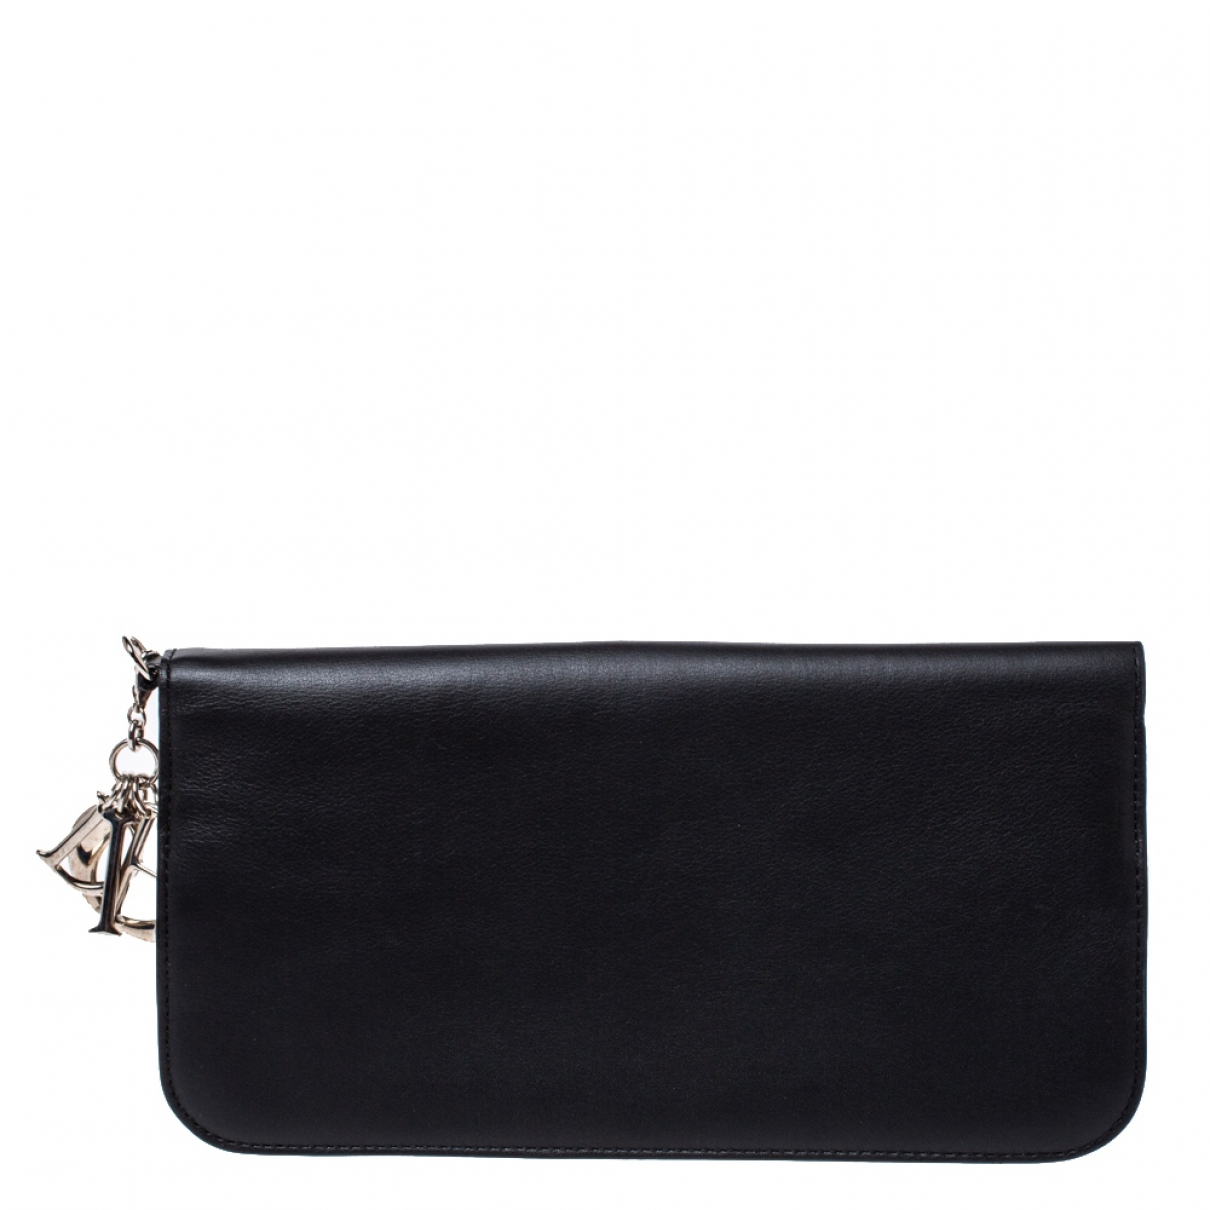 Dior Diorissimo Black Leather wallet for Women N